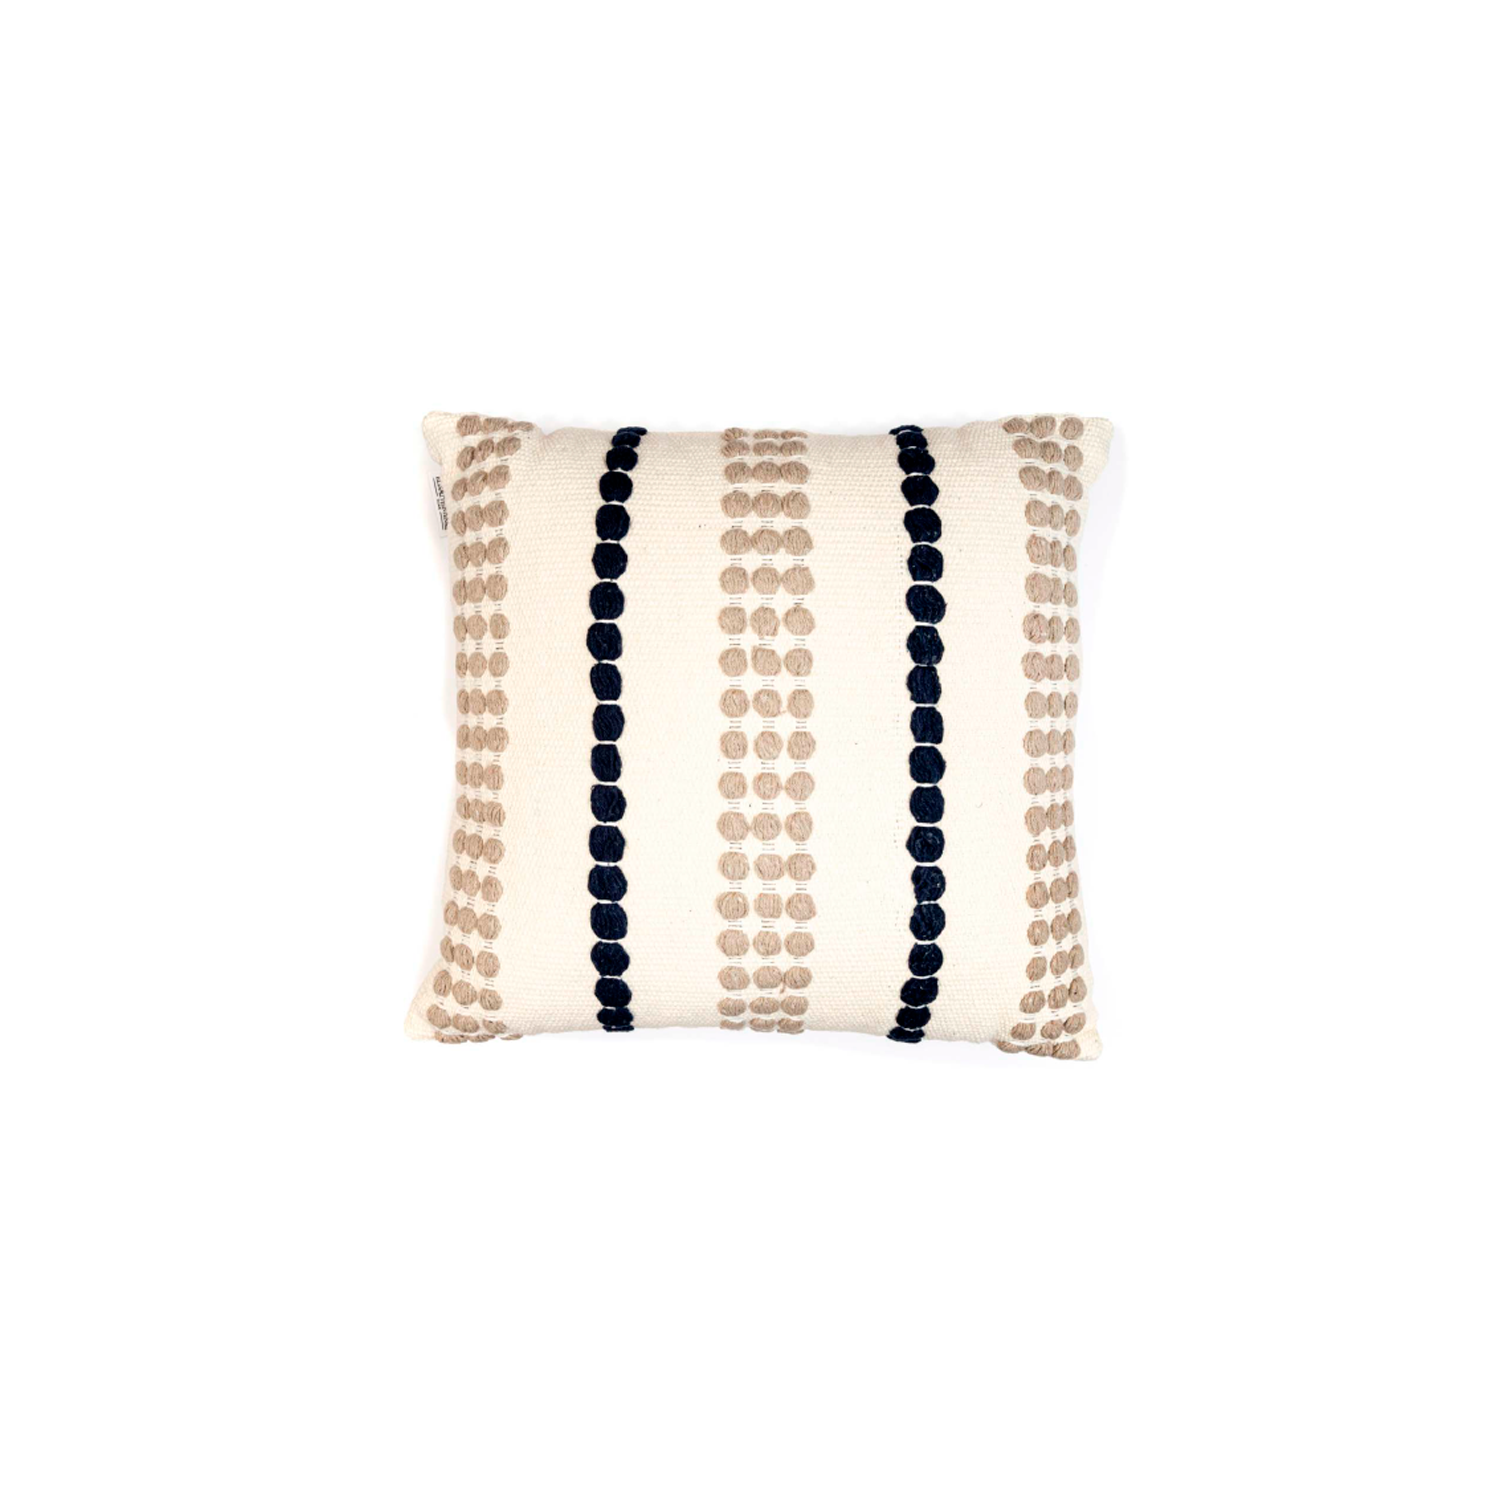 Lua Branca Cotton Cushion Square - The Flame Sustainable Collection is made from a selection of organic cotton fibres, eco-friendly, hand-woven or elaborated using traditional hand-loom techniques. Carefully knitted within a trained community of women that found in their craft a way to provide their families.  This collection combines Elisa Atheniense mission for responsible sourcing and manufacturing. Each piece is meticulously hand-loom by artisans who practised methods with age-old techniques. With a minimal electricity impact, each item crafted is therefore unique and exclusive. Weavers and artisans are the ultimate lifelines of Elisa Atheniense Home Products.  The hand woven cotton, washable cushion cover is made in Brazil and the inner cushion is made in the UK.   | Matter of Stuff